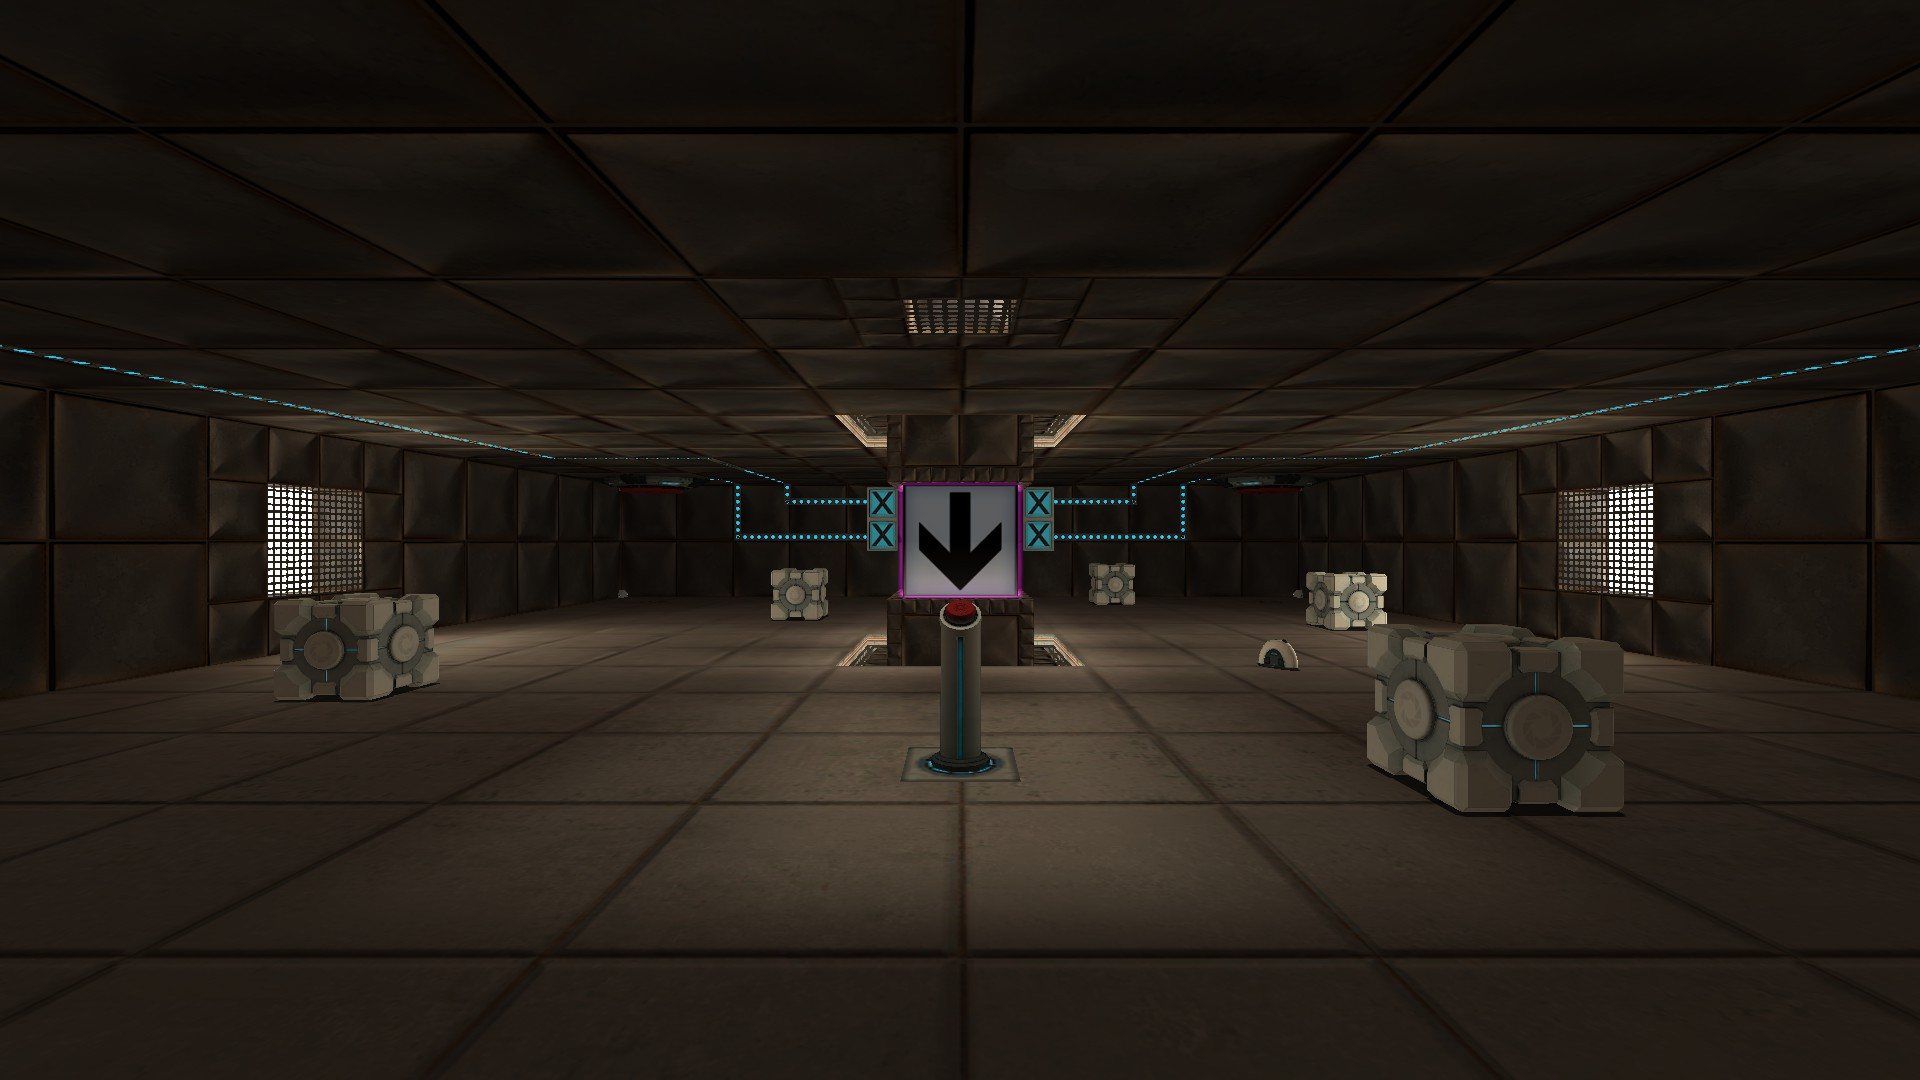 The first room has cubes, a sphere, and a radio about the floor, 4 buttons on the ceiling corners, and a big glowing down arrow in the middle, connected to a pedestal button.